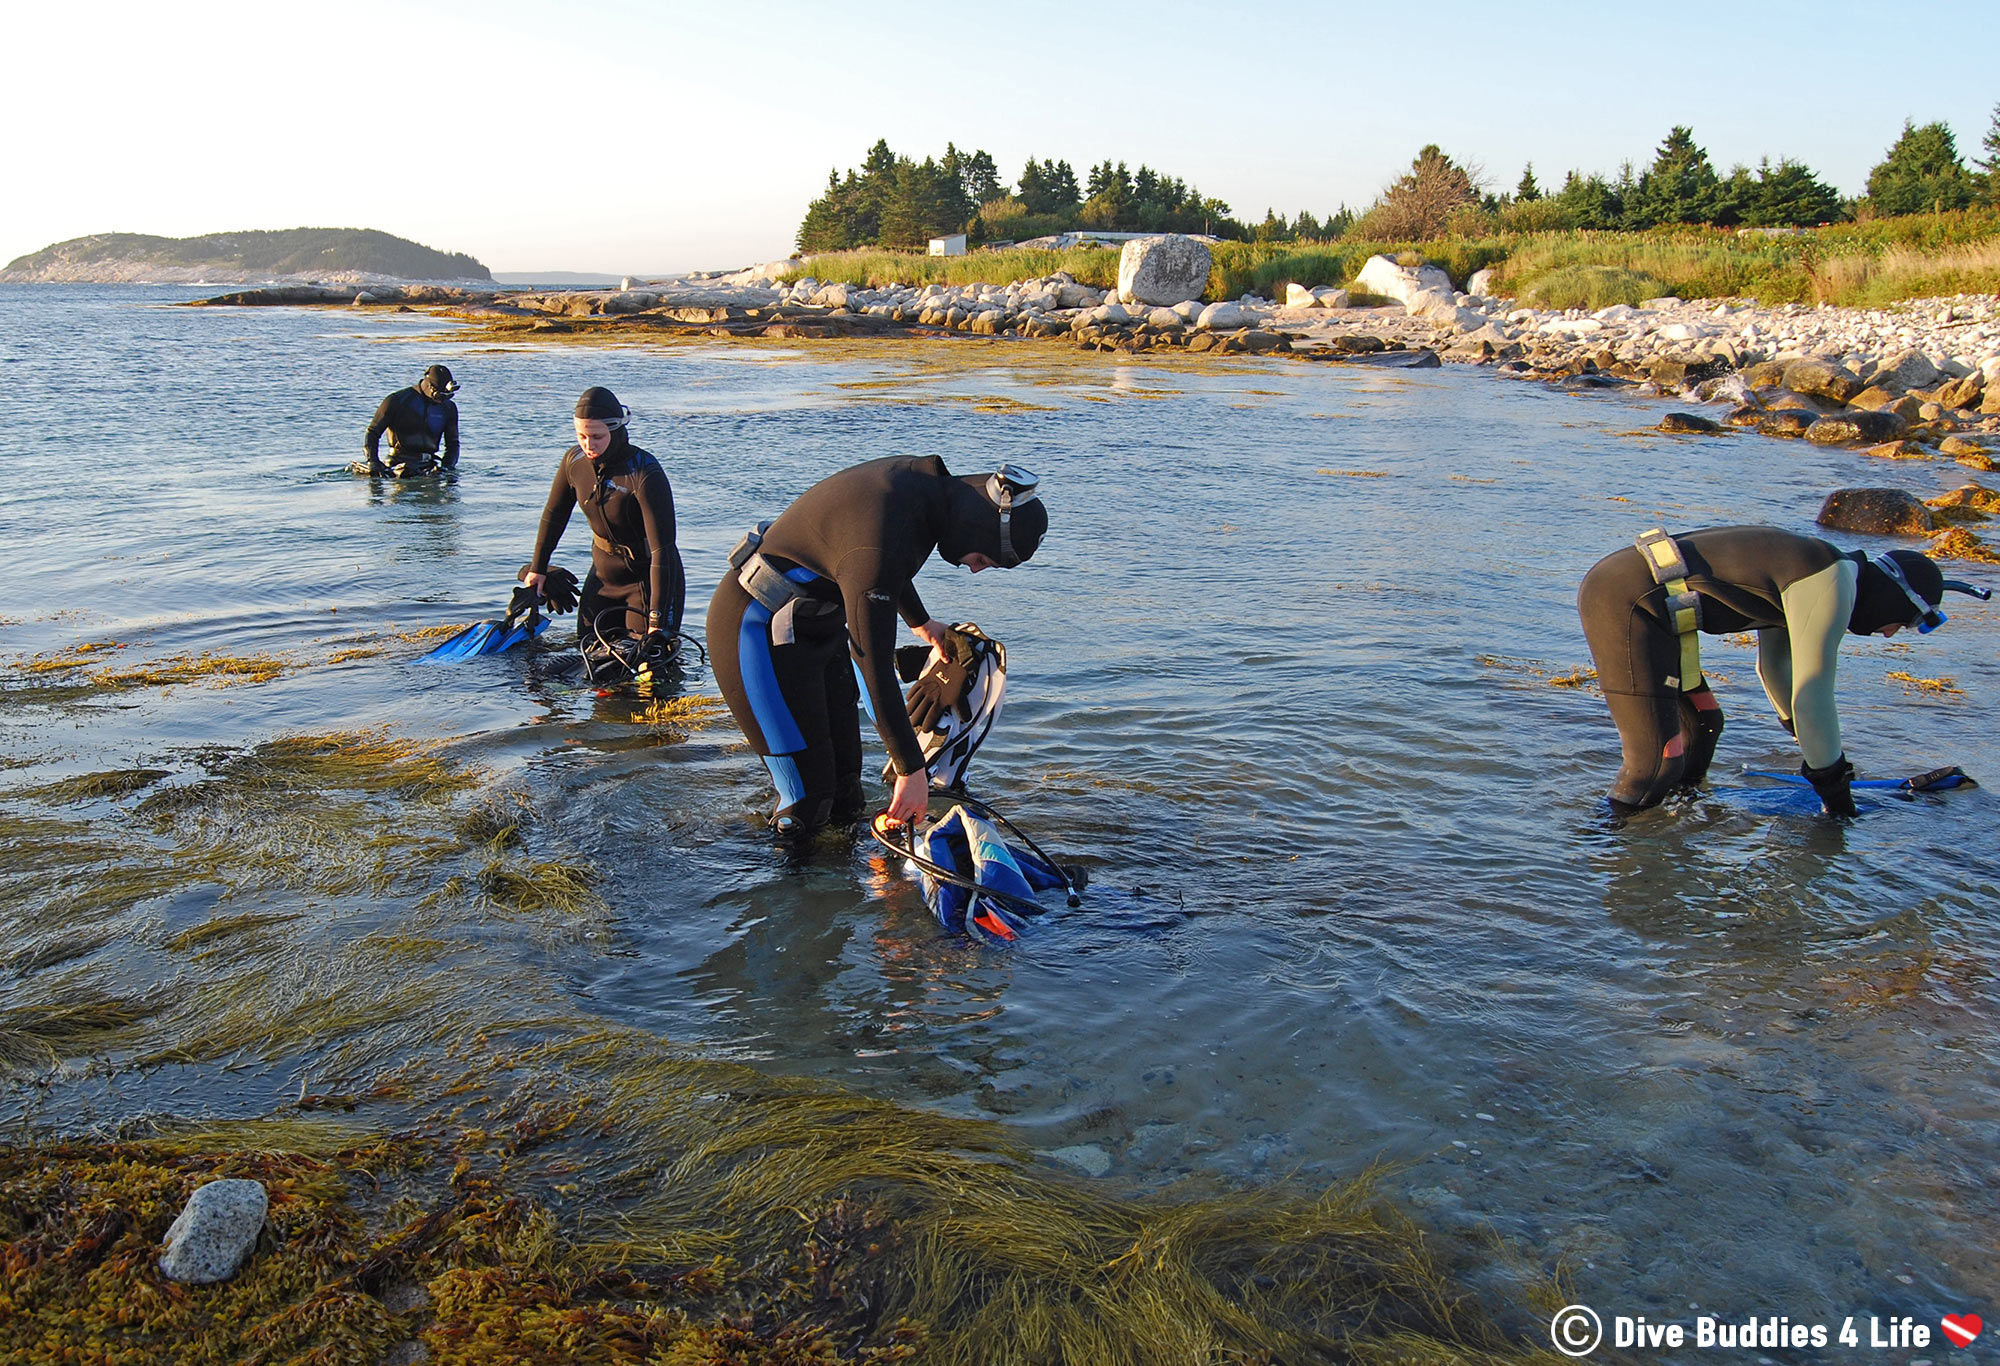 A Group Of Cold Water Canadian Scuba Divers Getting Ready To Dive